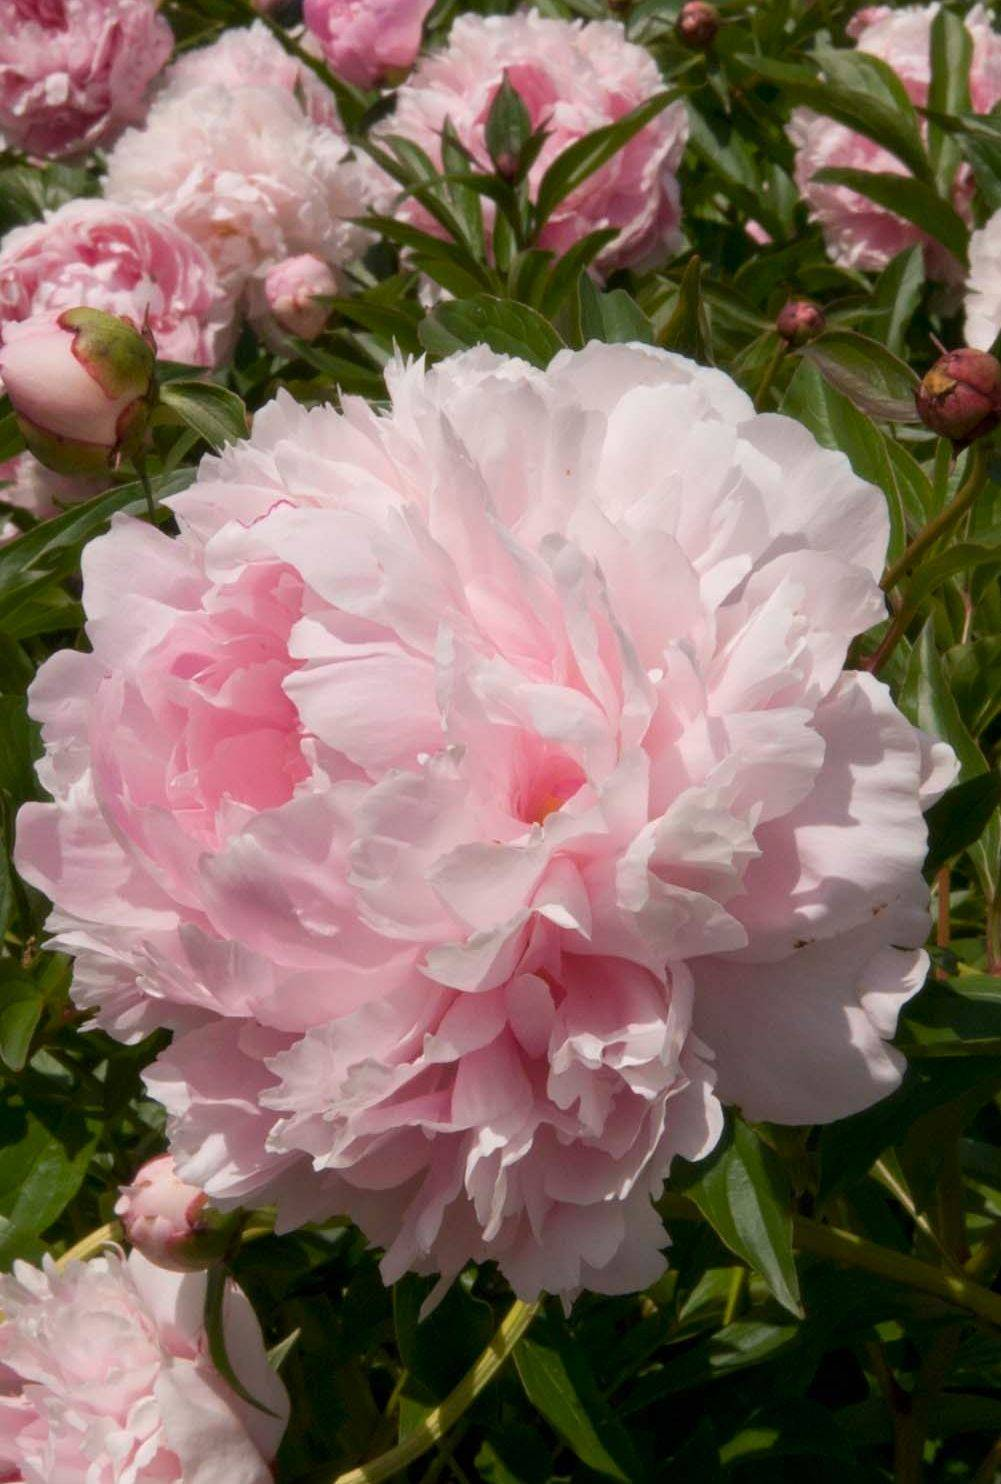 September is a good time to plant peonies or divide existing ones. They will do best in full sun.